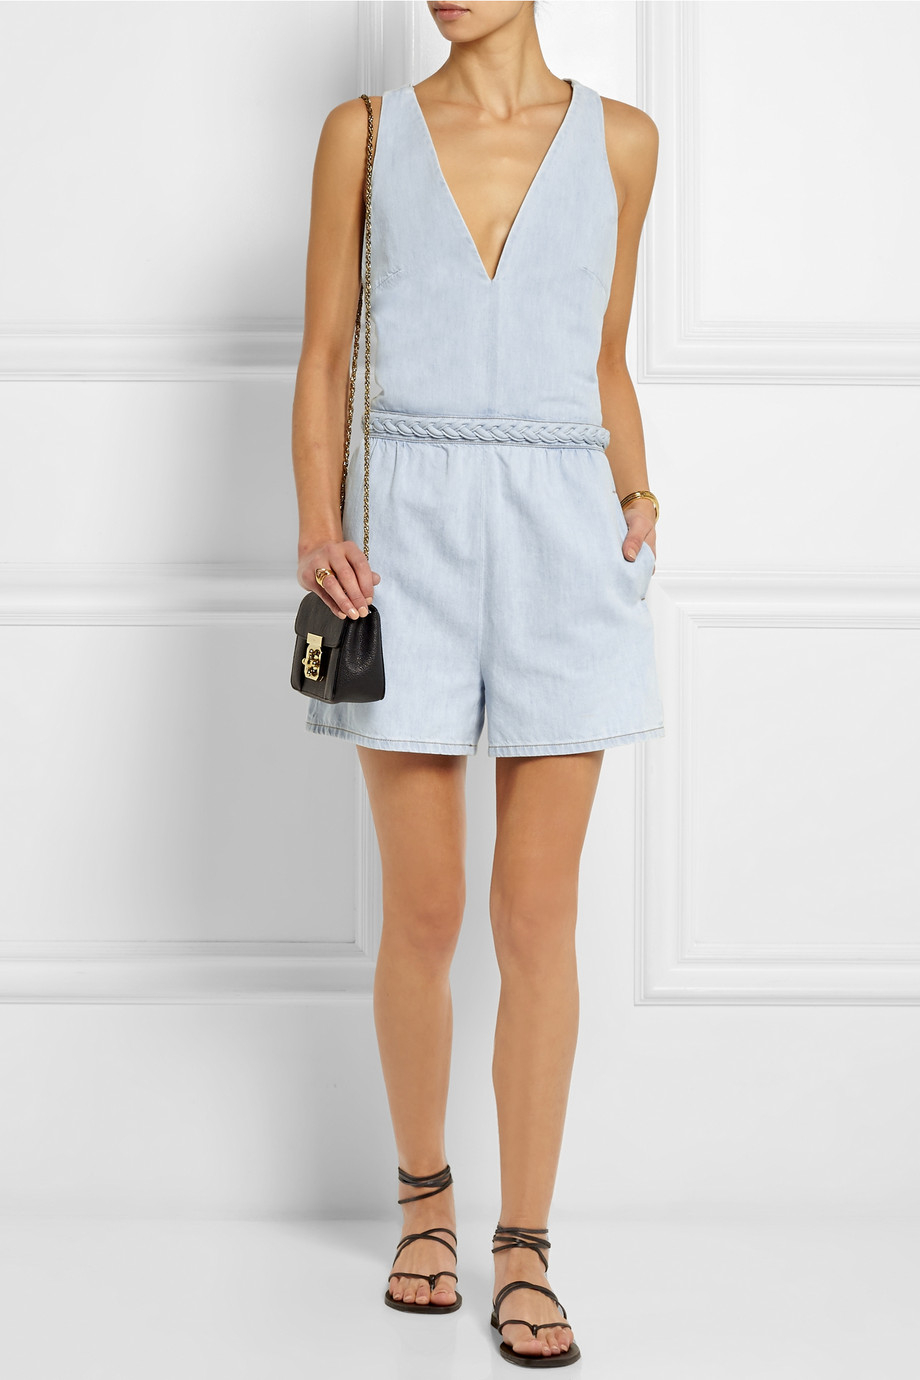 7a5f04aaa8 Valentino Denim Playsuit in Blue - Lyst